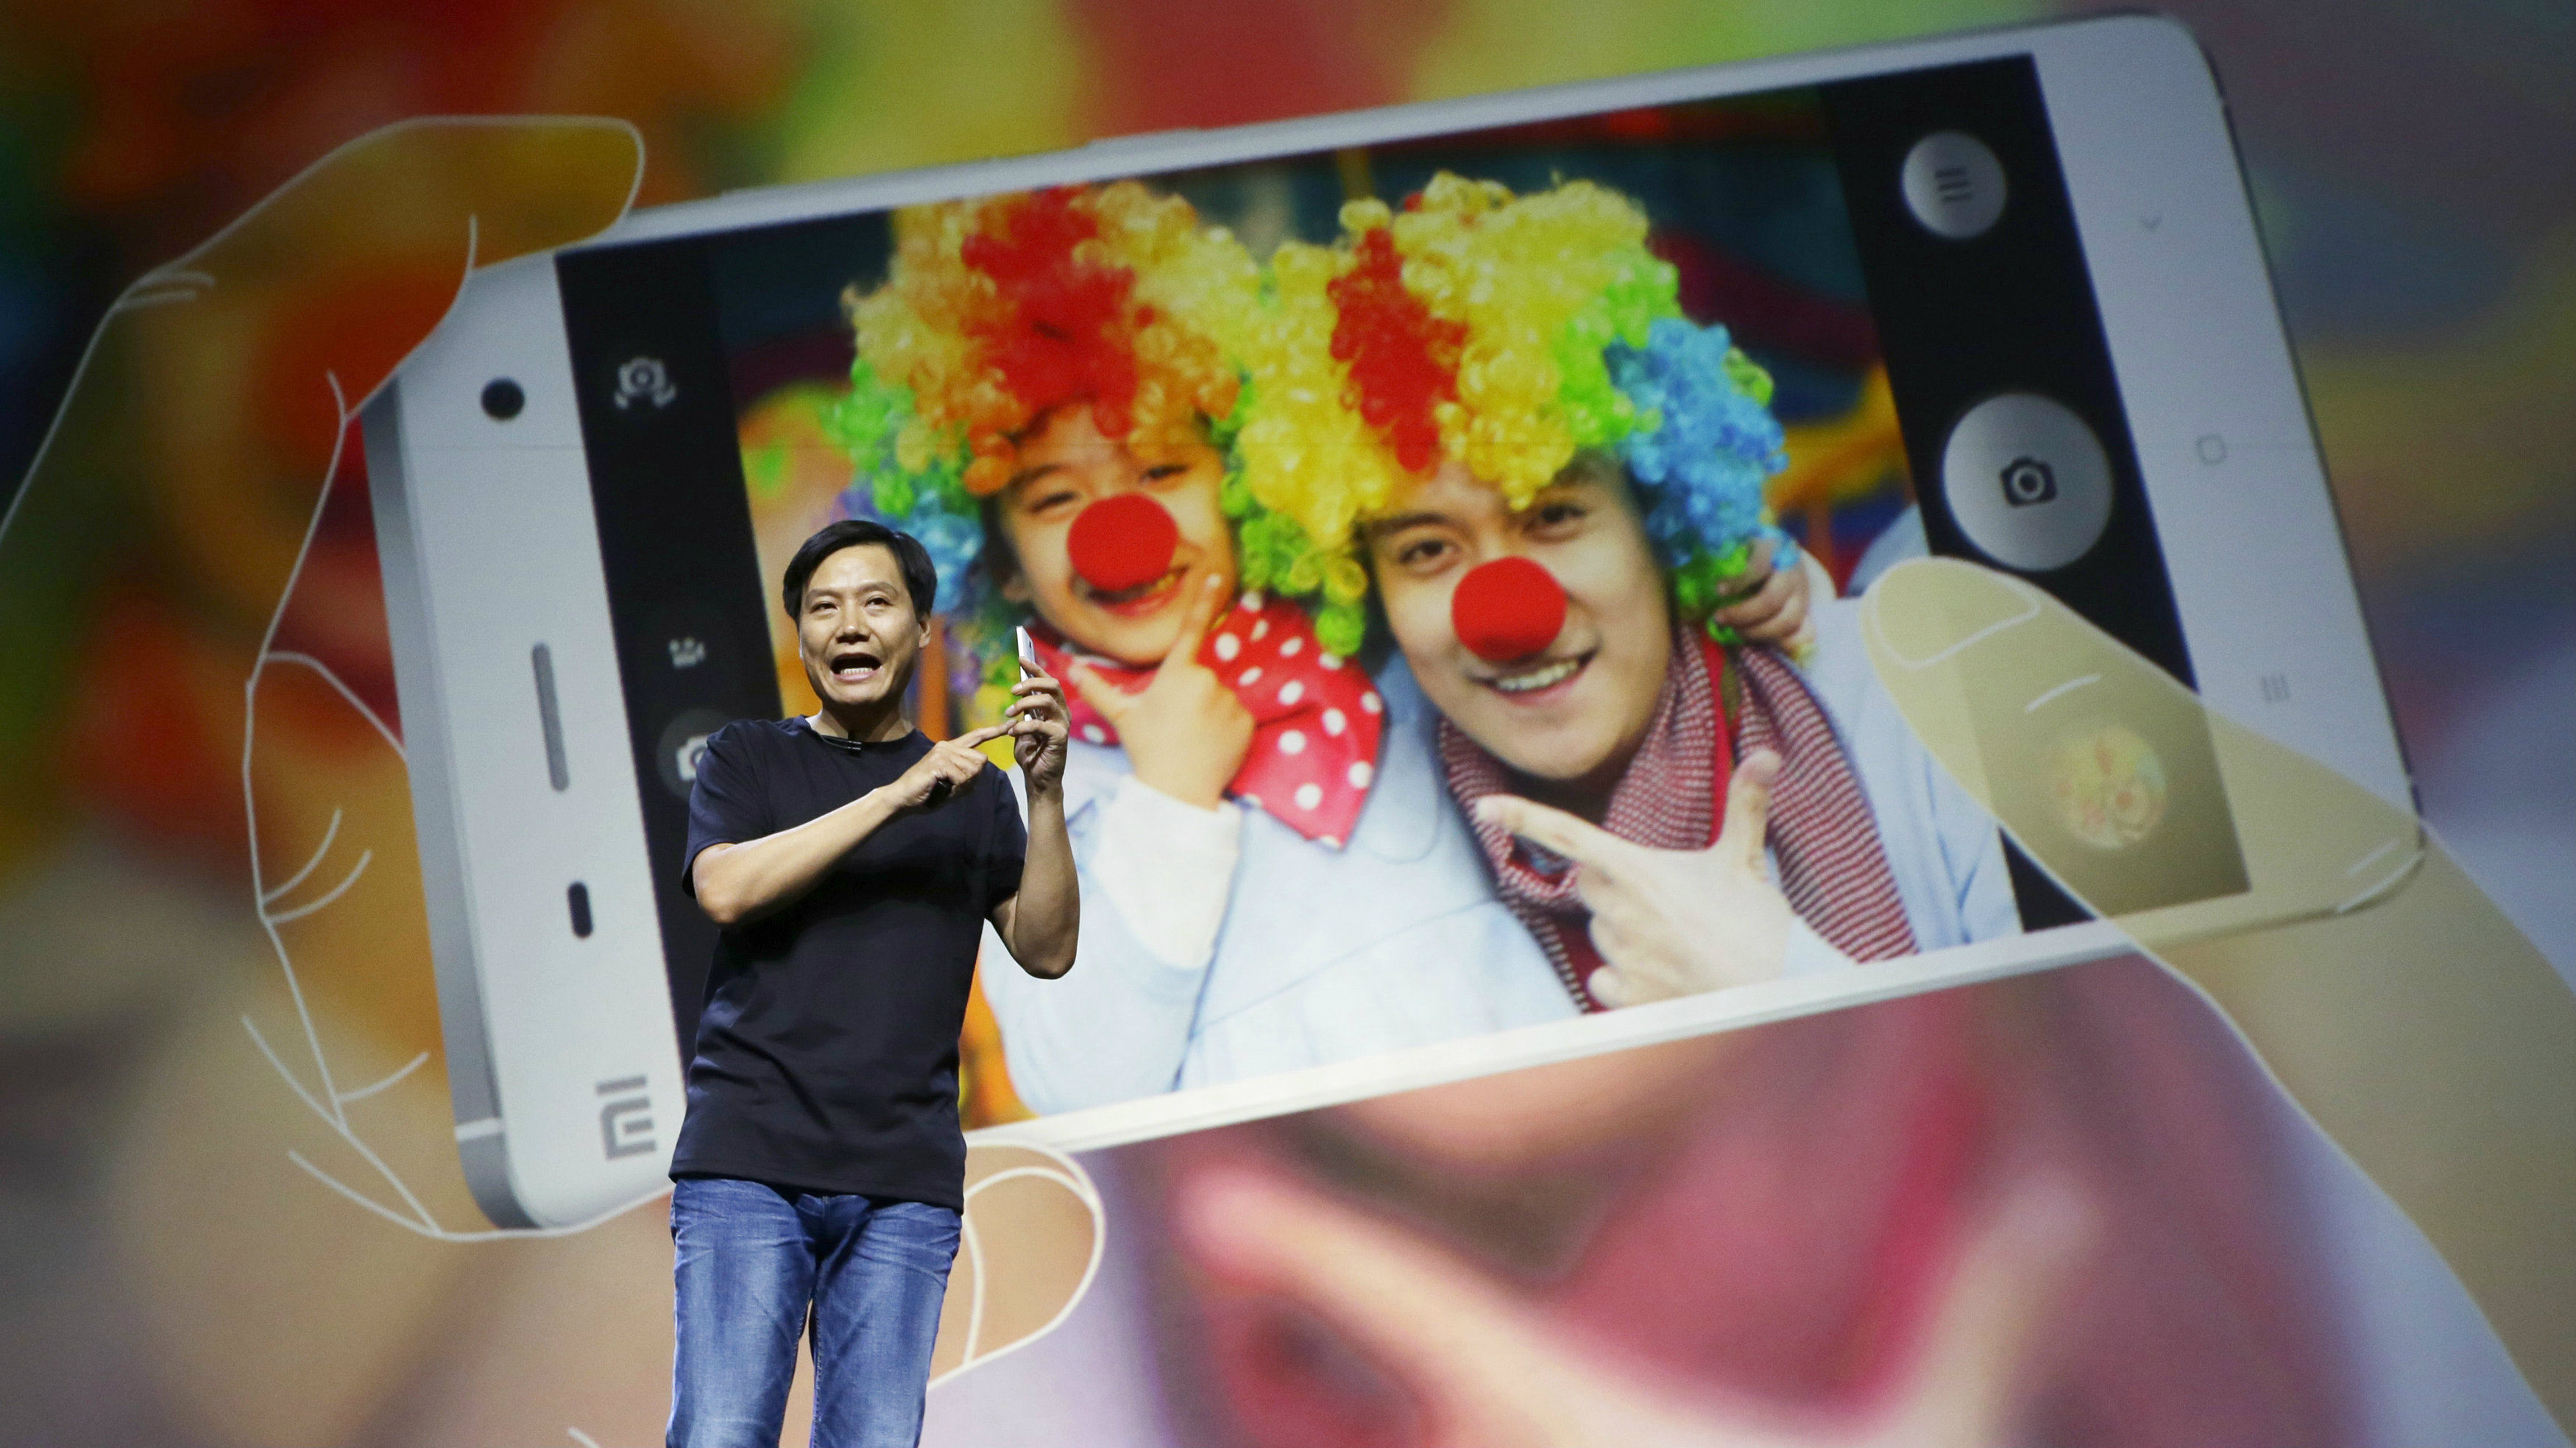 Lei Jun, founder and chief executive officer of China's mobile company Xiaomi, demonstrates the new features of the new Xiaomi Phone 4 at its launching ceremony, in Beijing July 22, 2014. China's Xiaomi Inc took China's smartphone crown in the second quarter after the Beijing-based firm replaced Samsung Electronics Co Ltd as China's largest smartphone vendor, according to data from Canalys. Picture taken on July 22, 2014.